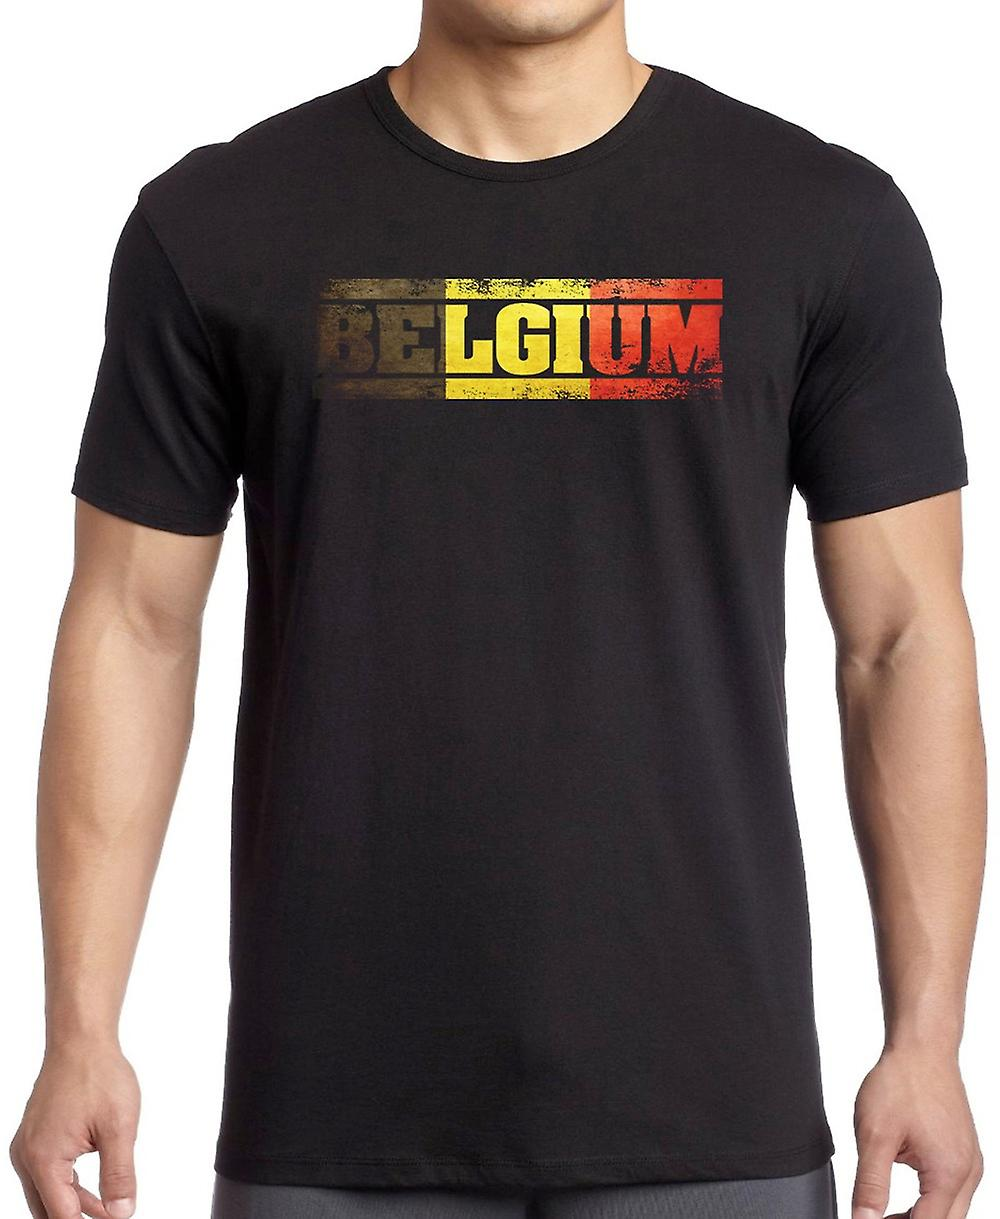 Belgian Belgium Flag - Words T Shirt